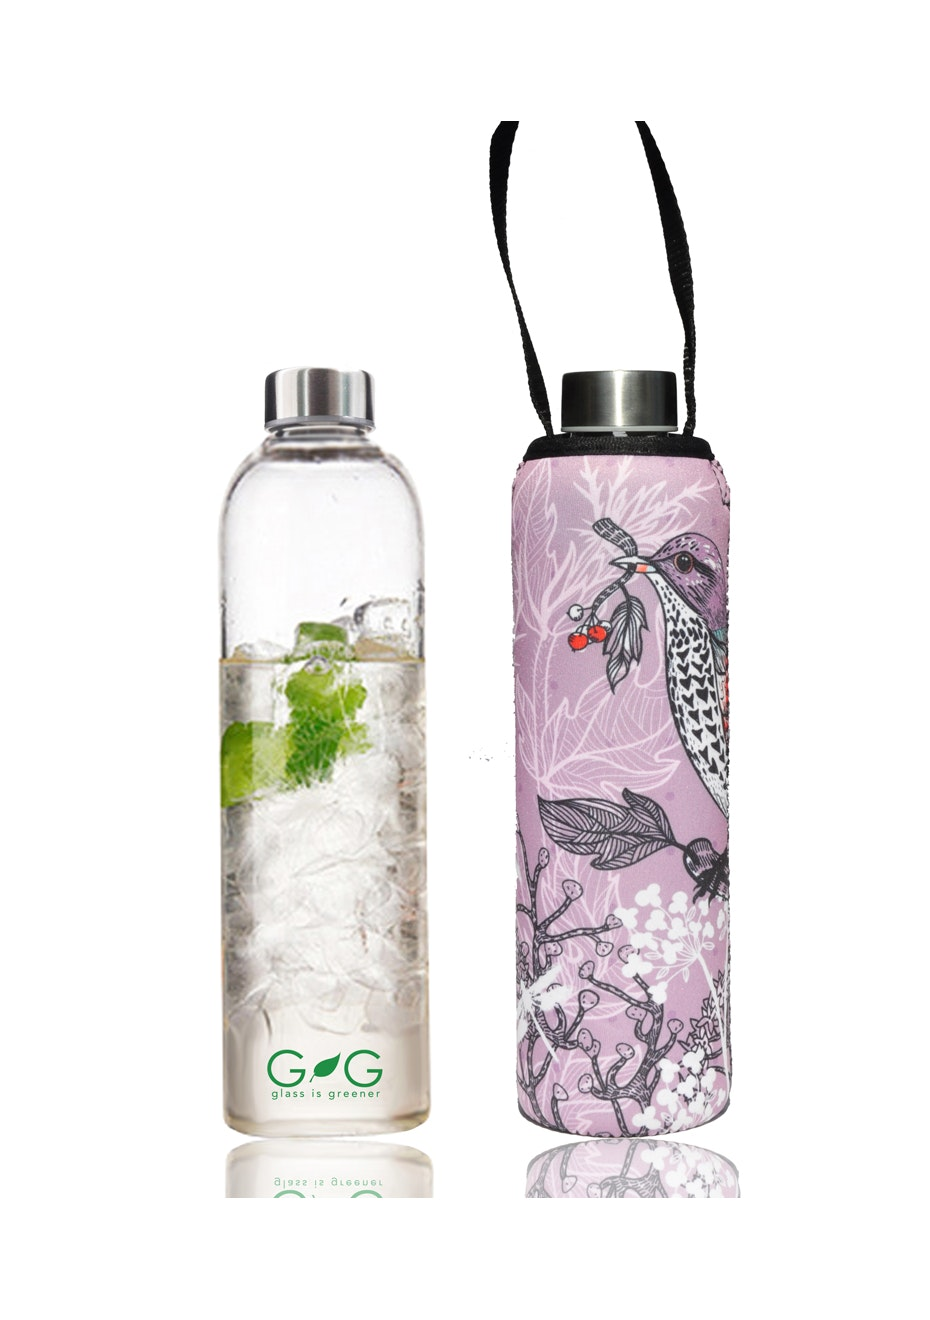 BBBYO - Glass Is Greener Bottle 750 ml + Carry Cover (Branch Print) -750 ml